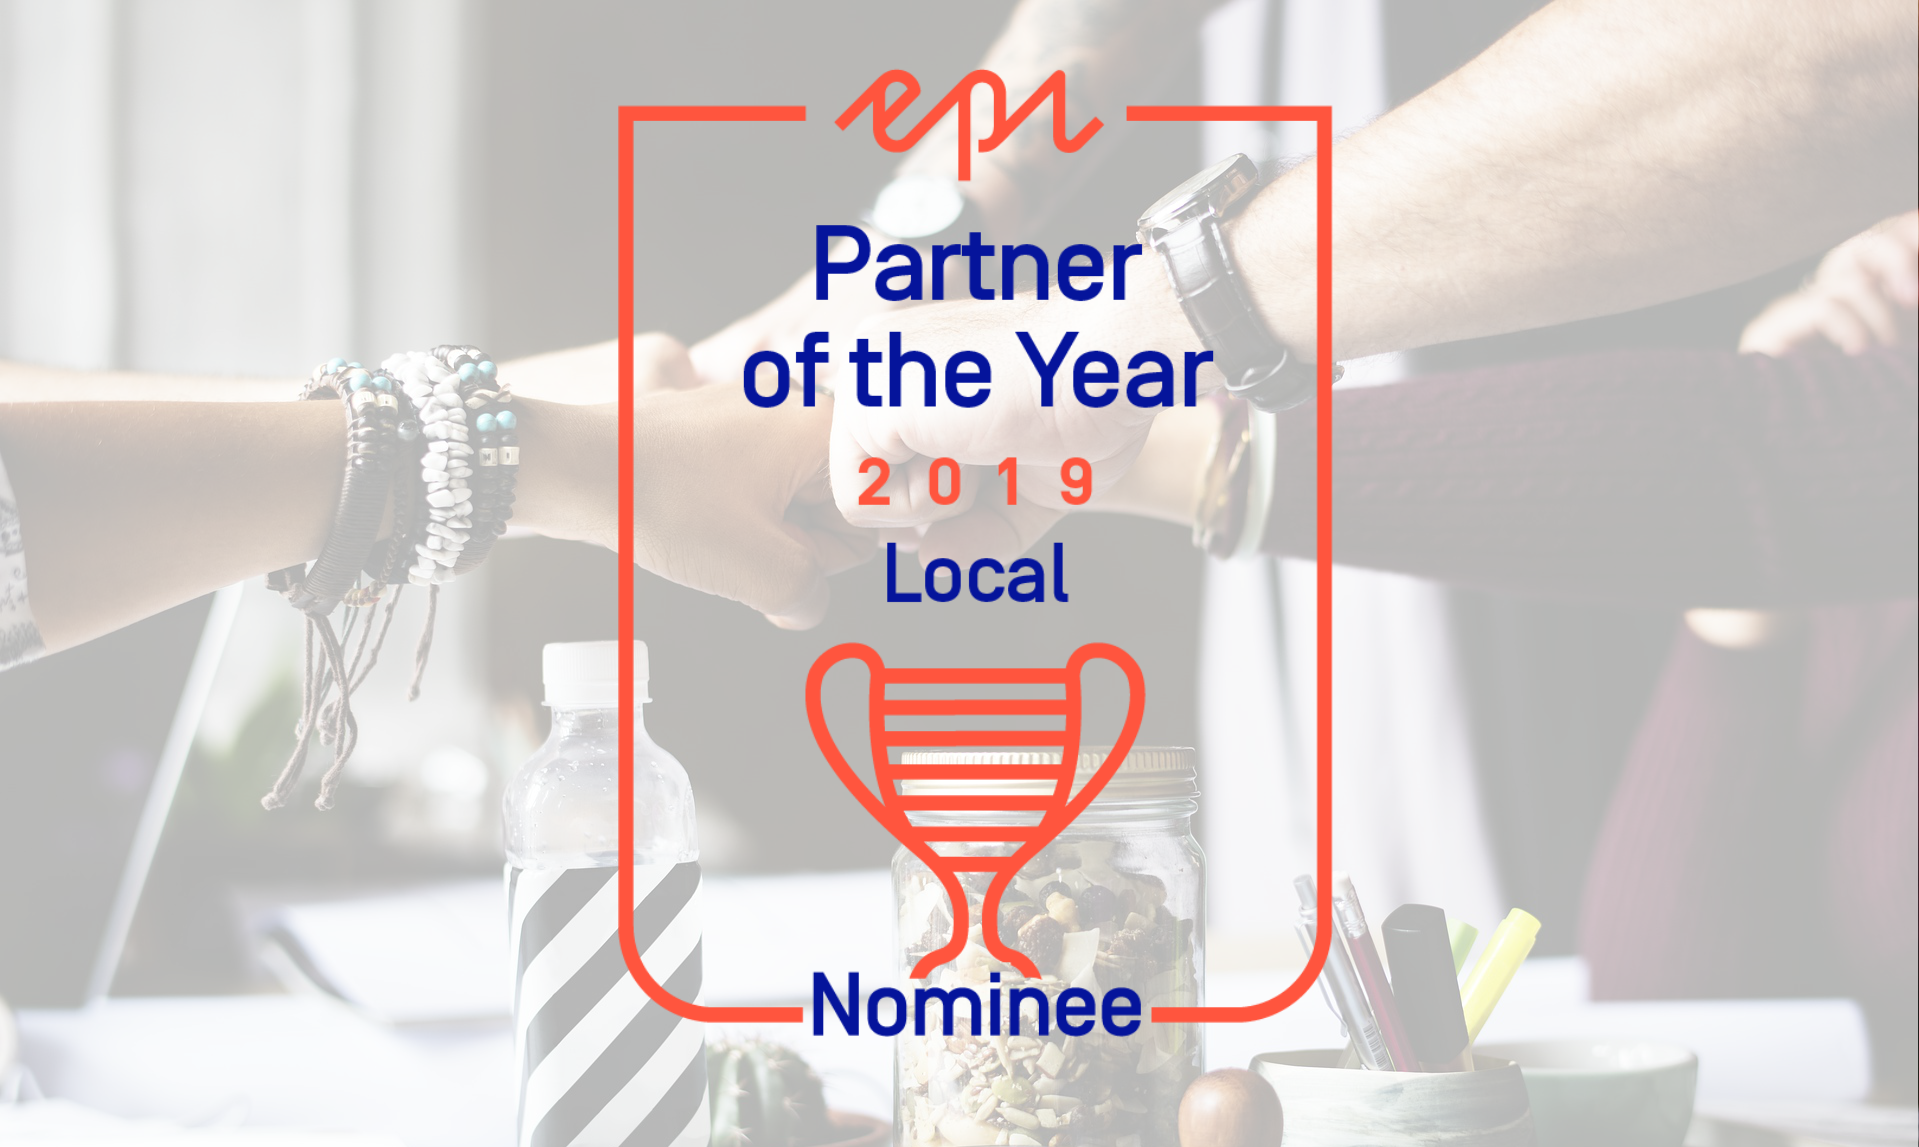 episerver-partner-nominee